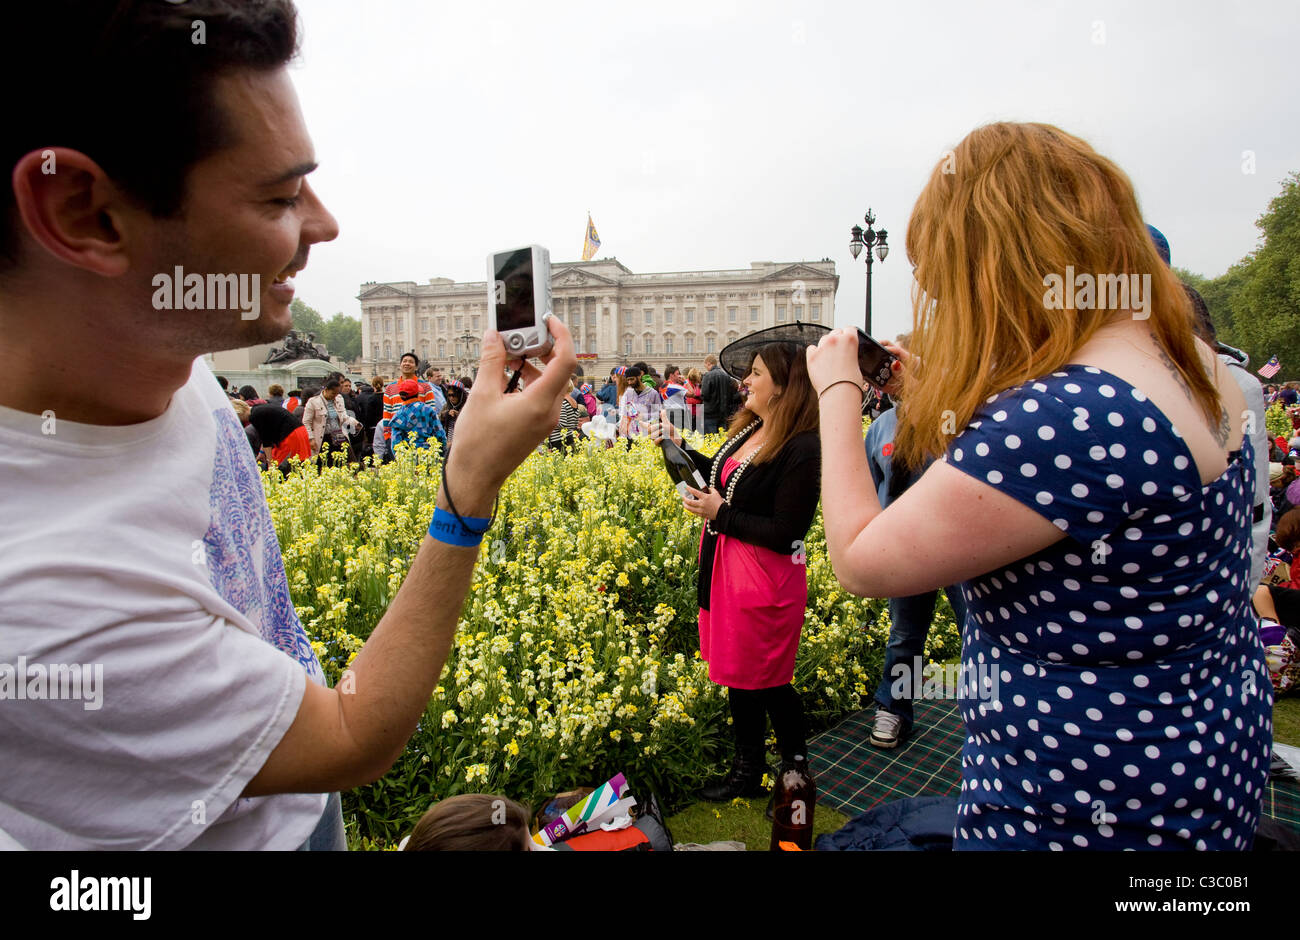 The Royal wedding of Prince William and Kate Middleton. The Royal Mall. 29th April 2011 - Stock Image